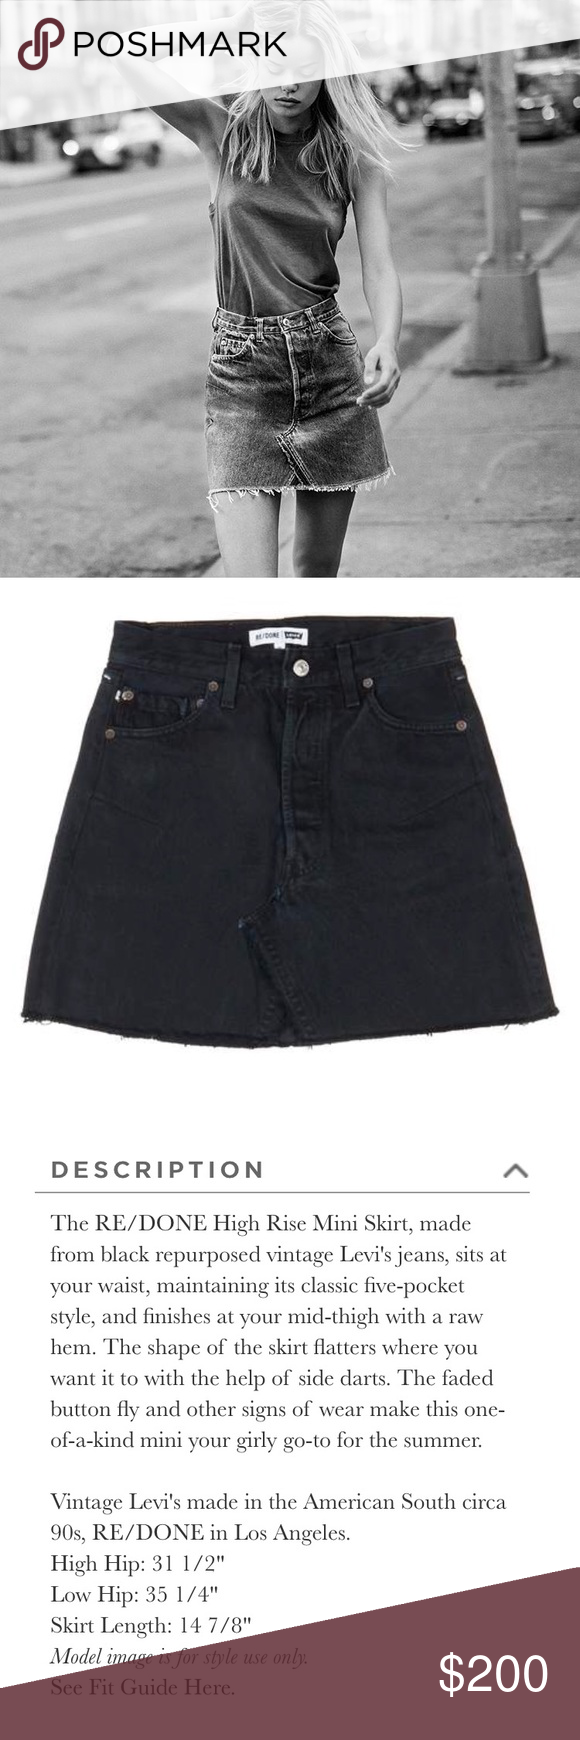 87be4bd19b Re/Done Vintage Levi's 90s Skirt - Black Re/Done vintage Levi's, authentic  and new with tags Re/Done Jeans